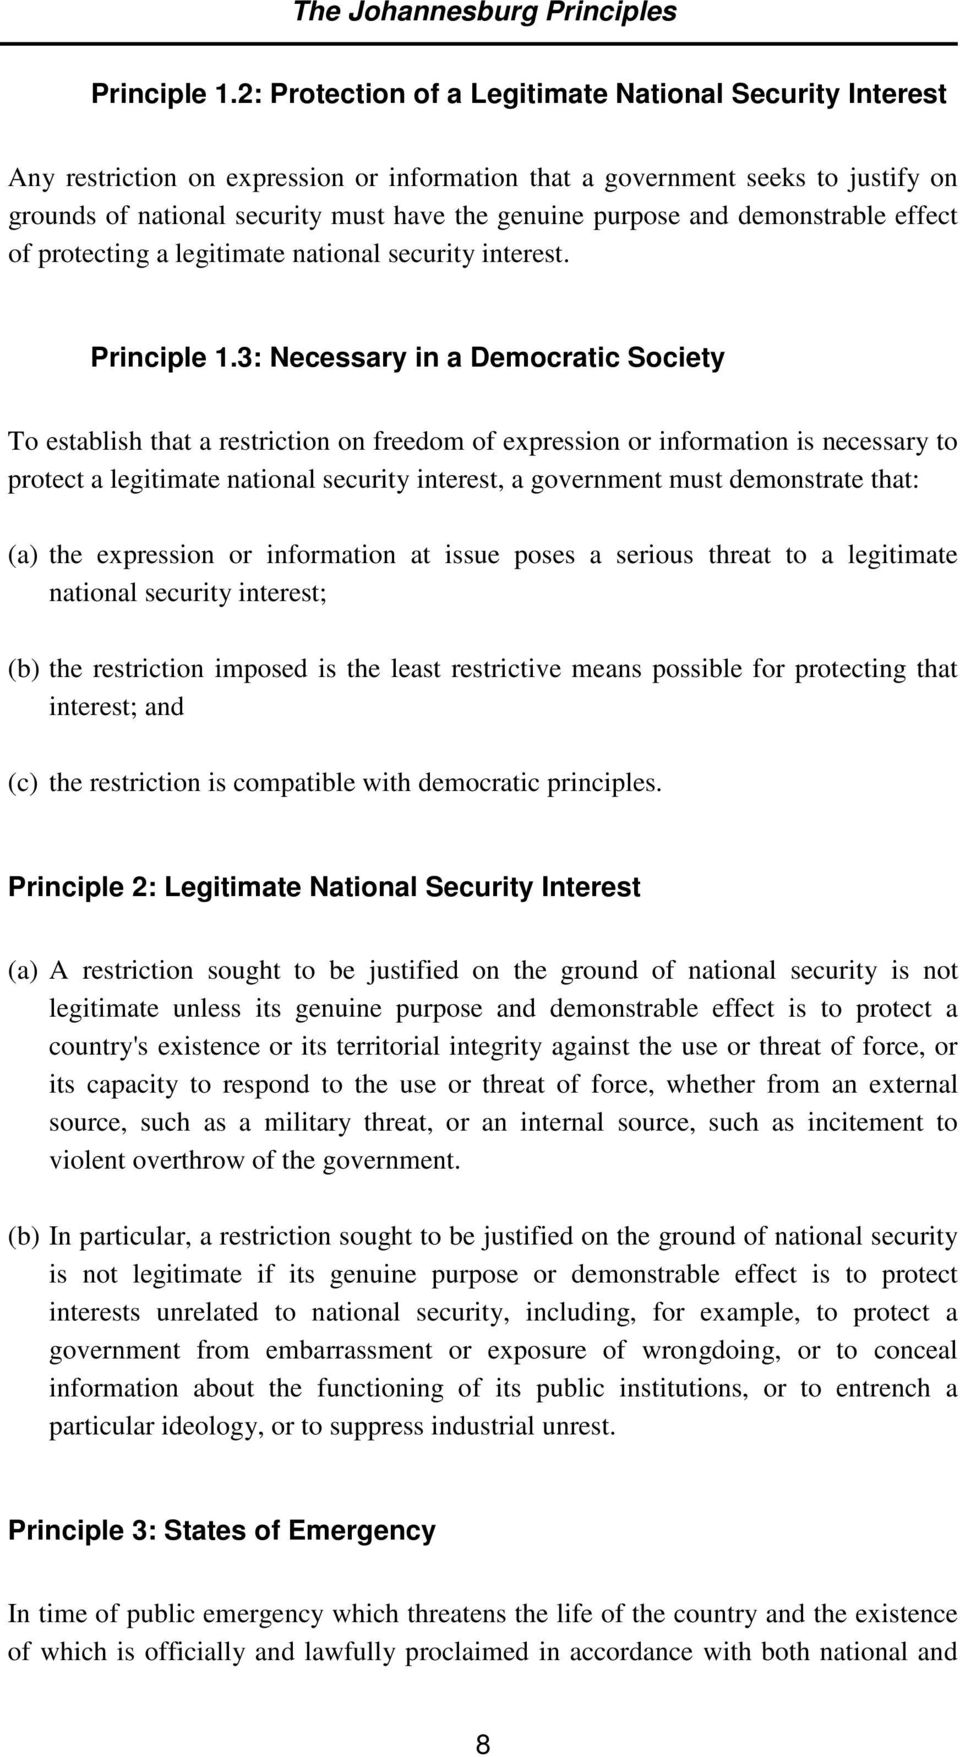 and demonstrable effect of protecting a legitimate national security interest. Principle 1.